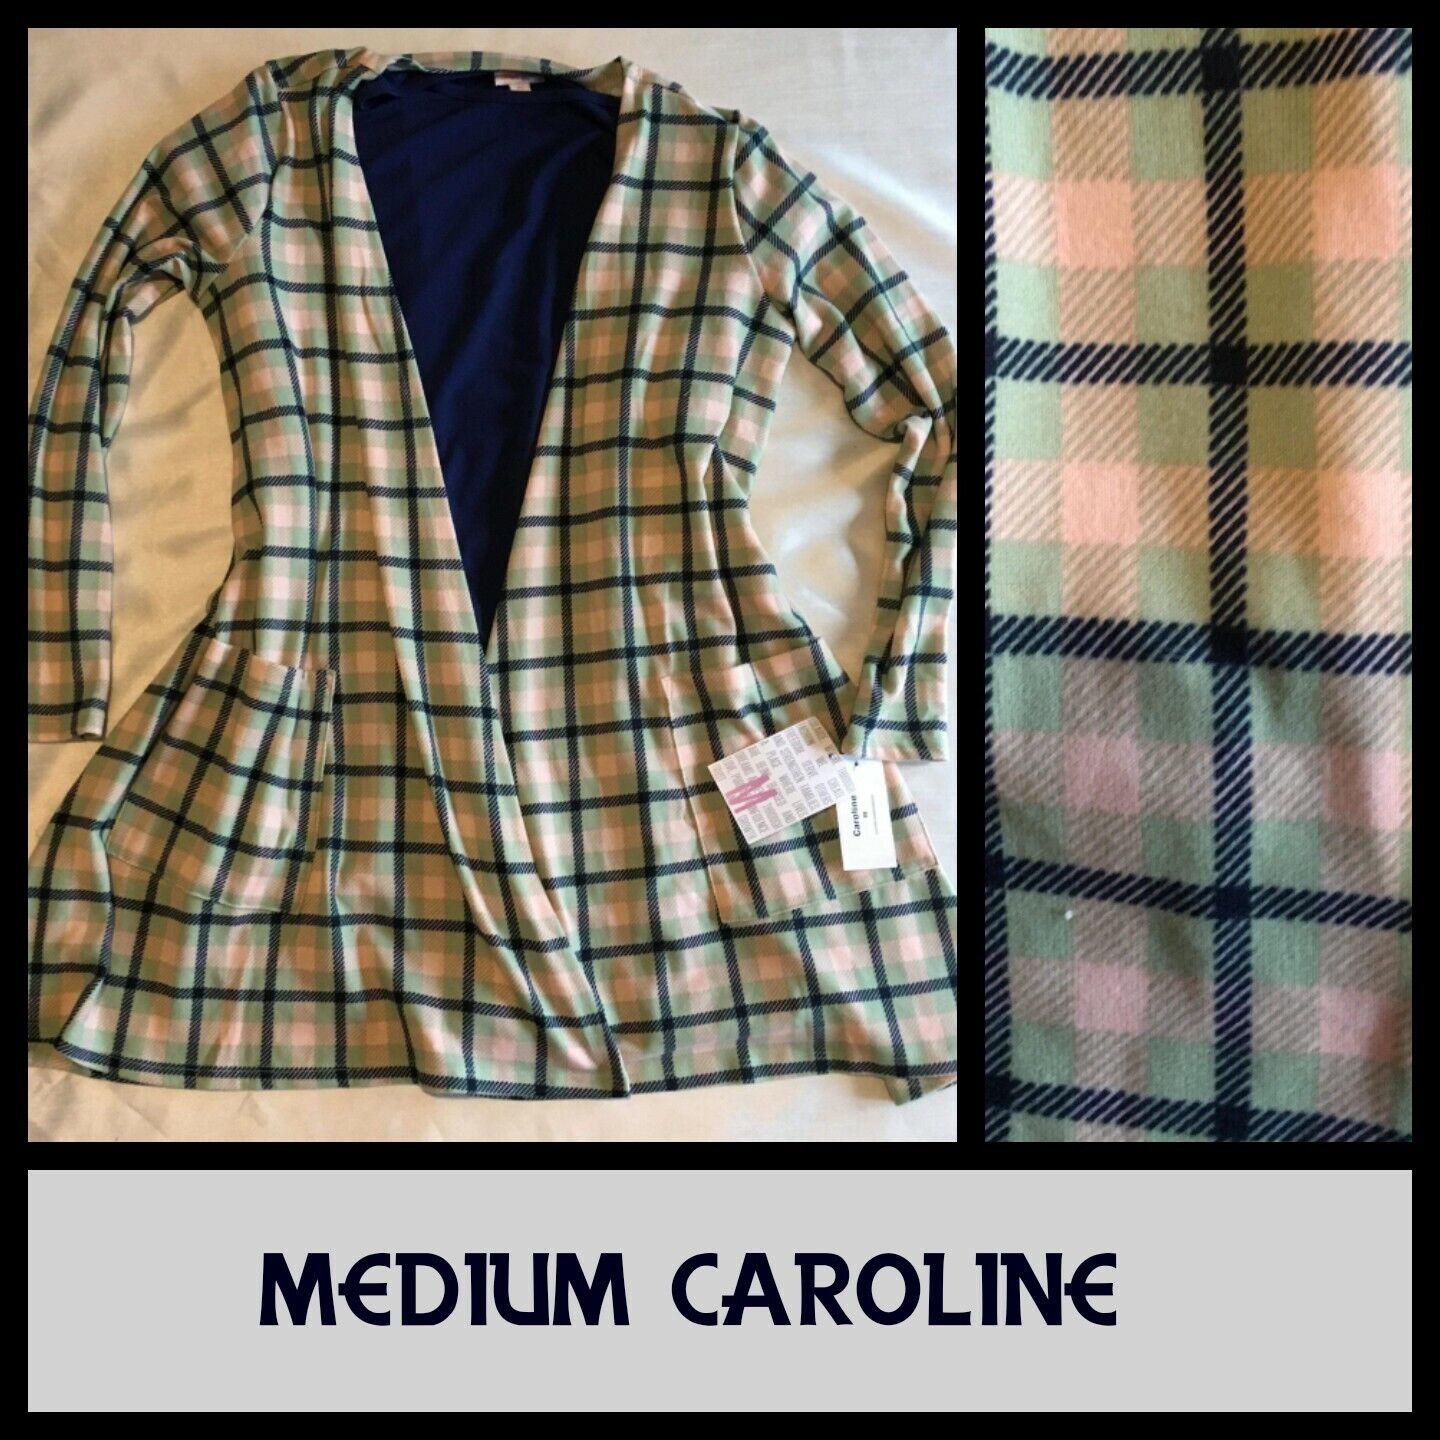 BNWT Lularoe M Medium Caroline. Very Soft and Sweet Cashmere Like Cardigan.